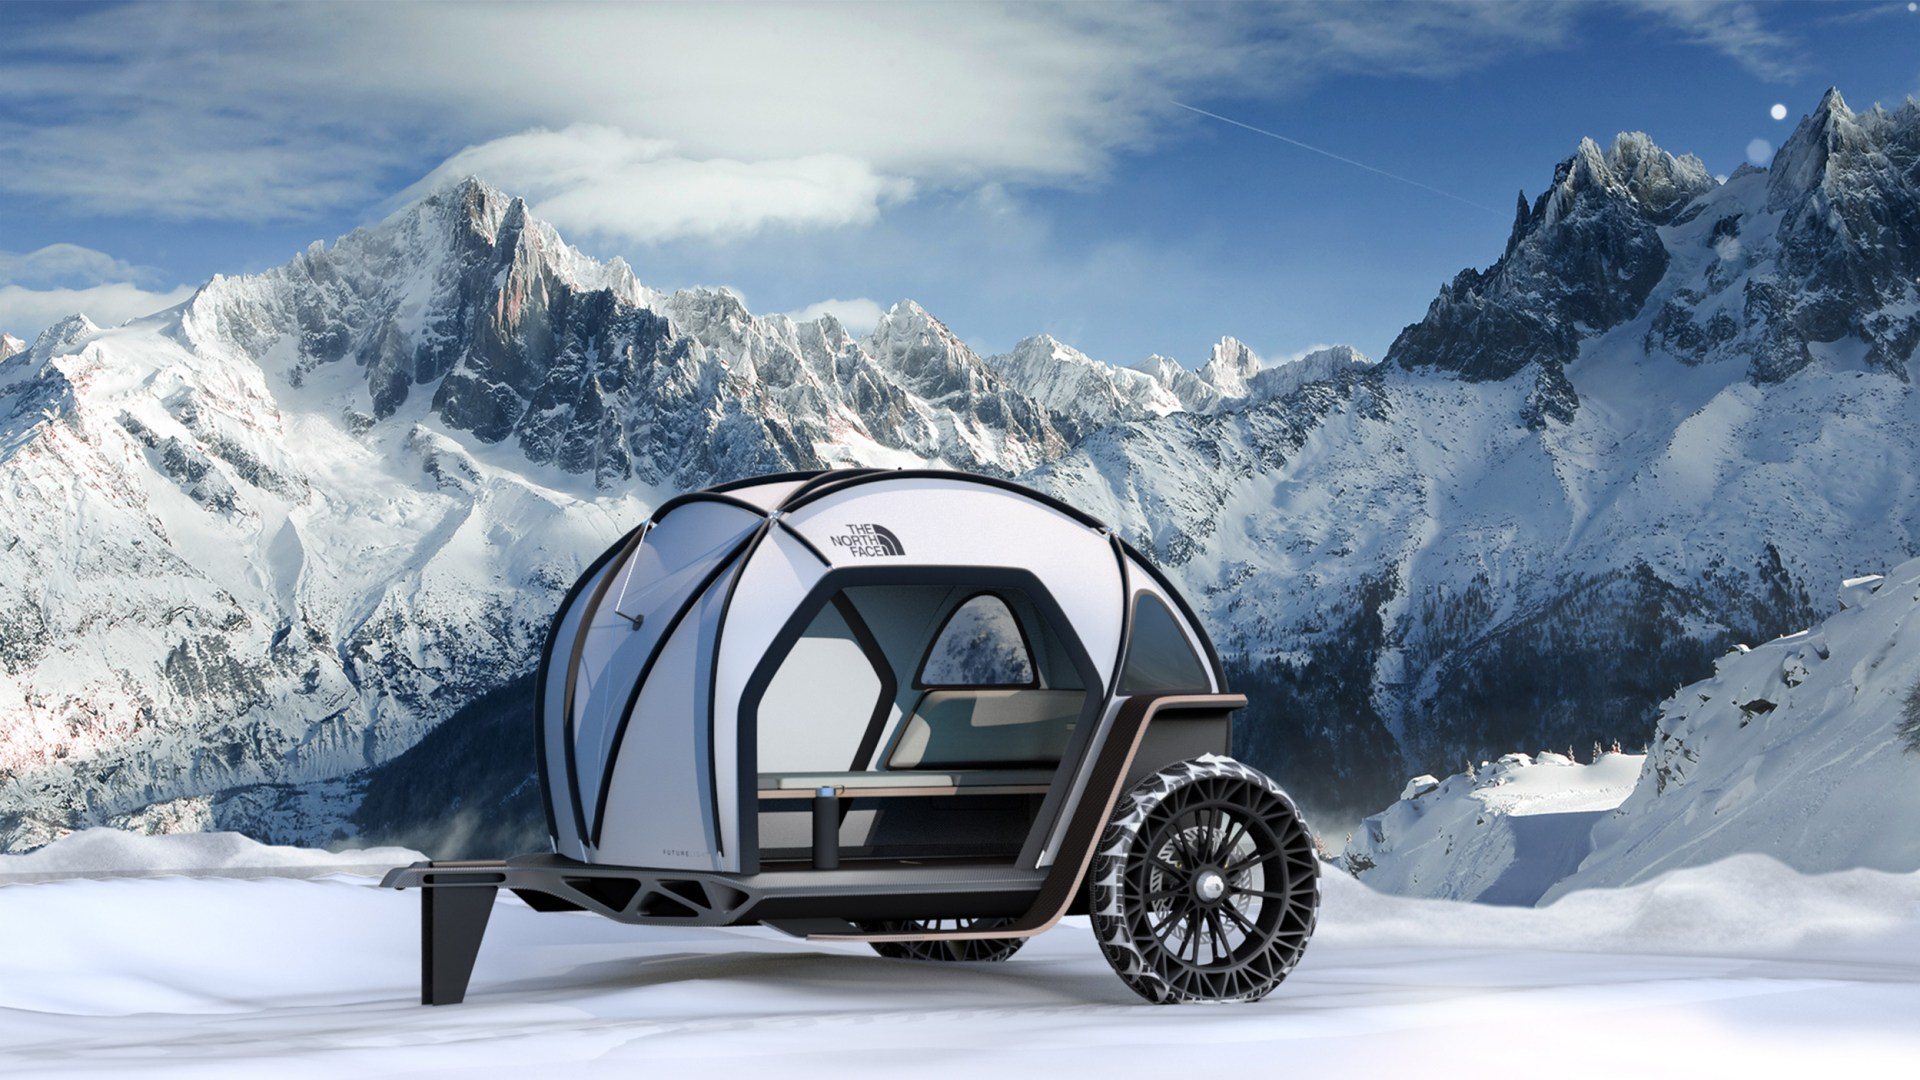 north face camper in snowy mountains